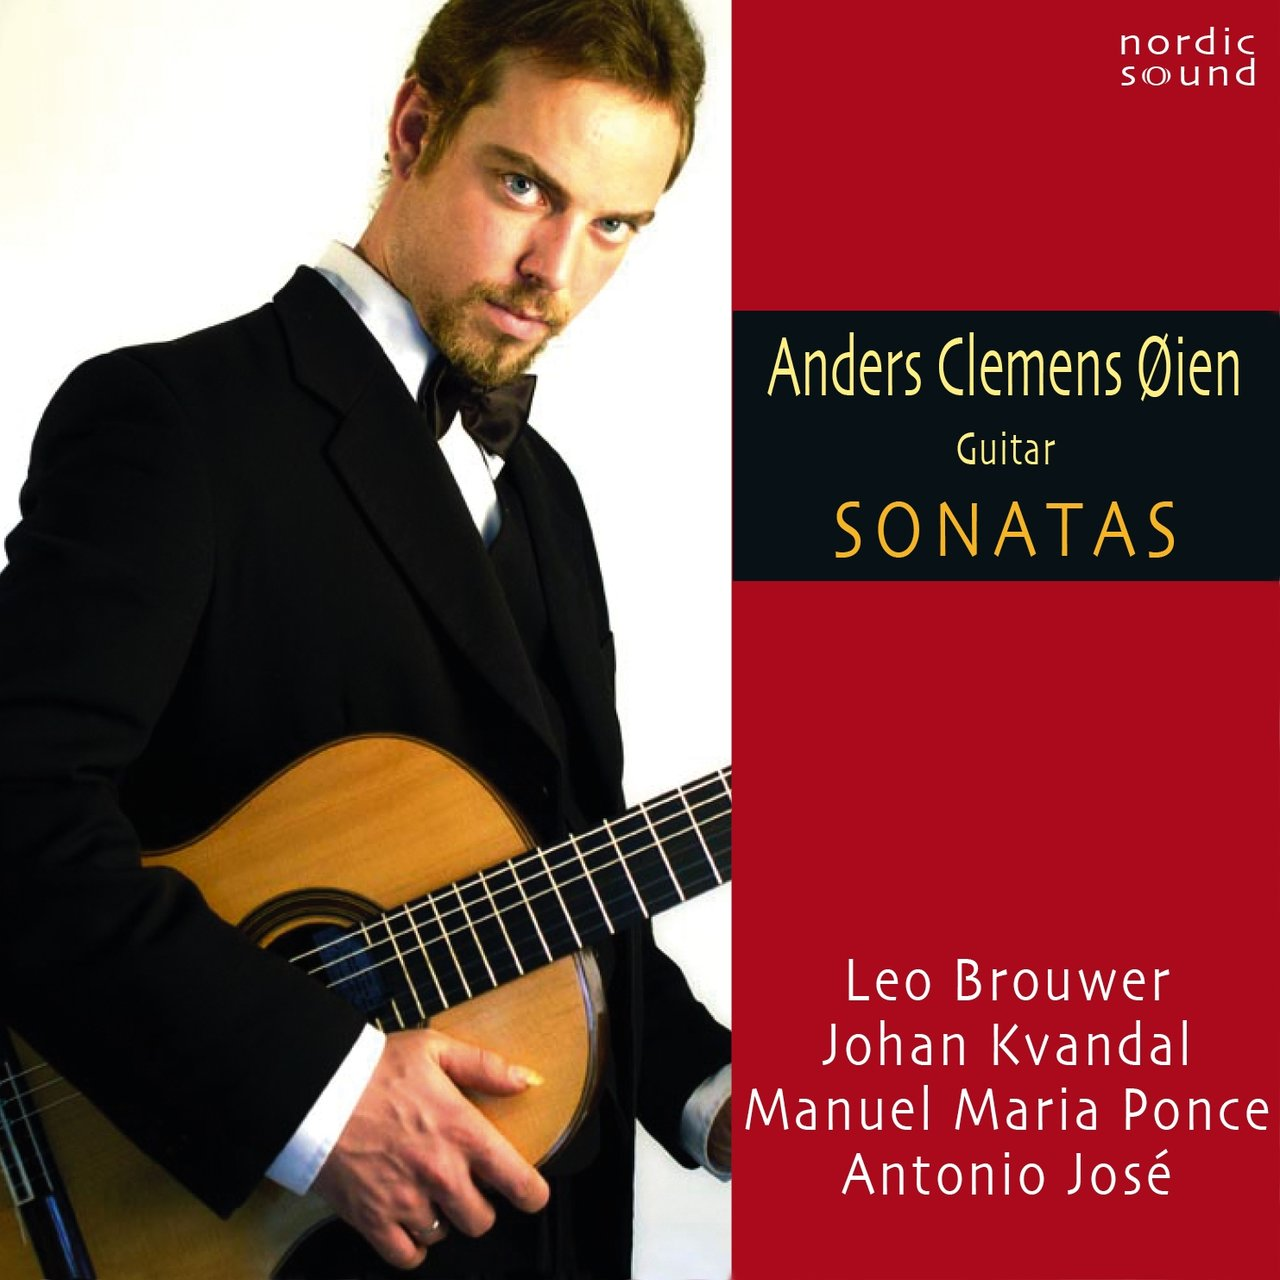 Tidal Listen To Sonatas Works By Leo Brouwer Johan Kvandal Little Fresco Pink Bowie Shoes Manuel Maria Ponce And Antonio Jos On